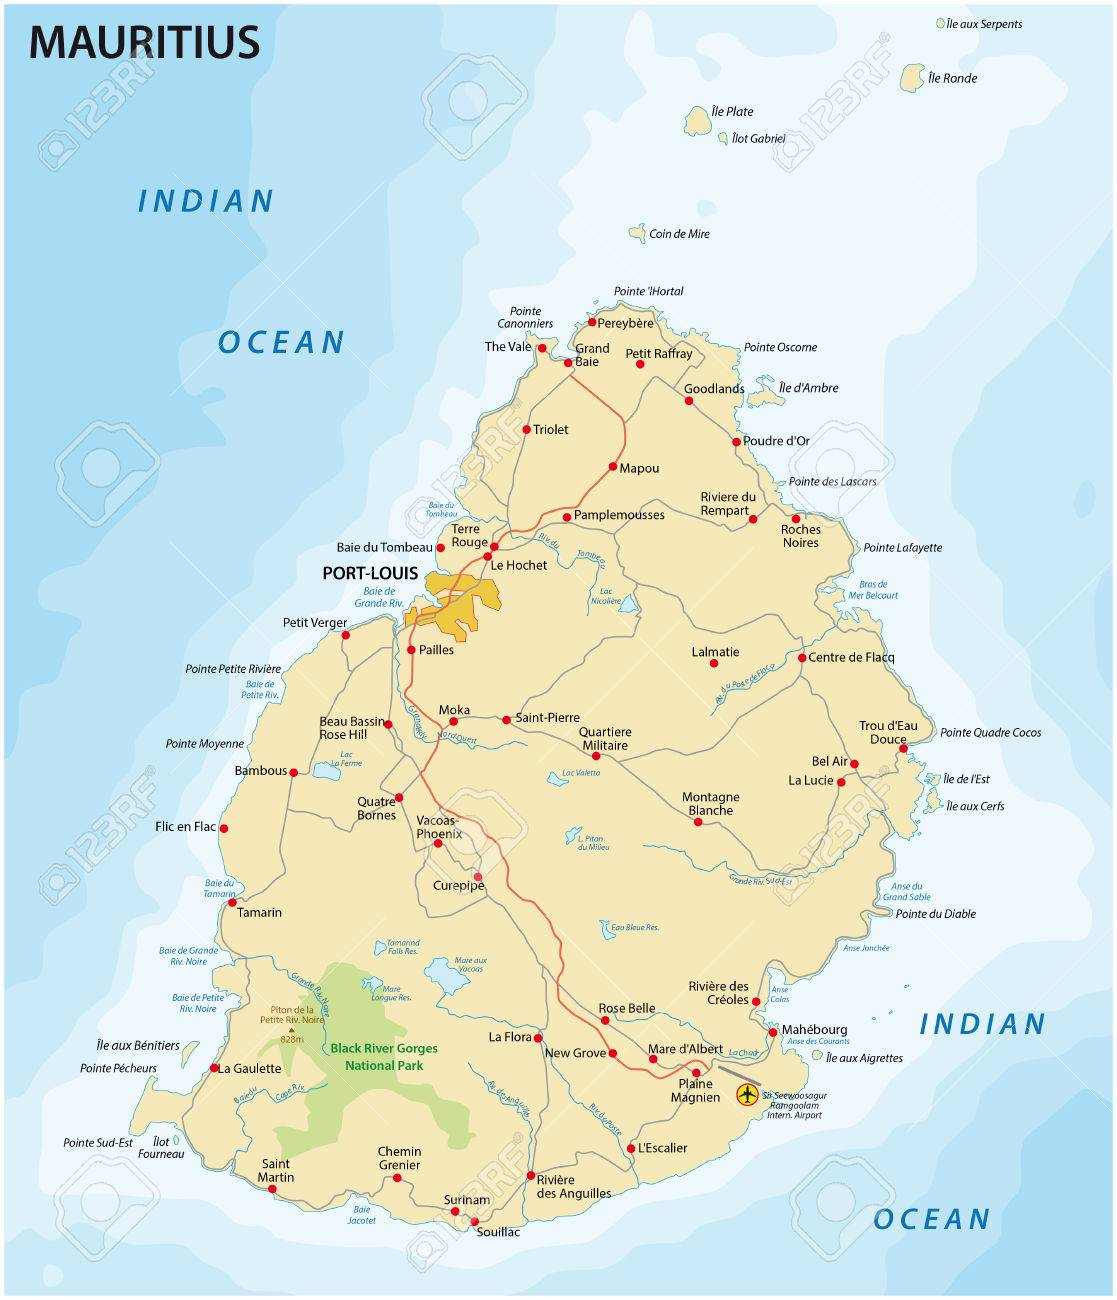 Road Map Of The State Iceland Mauritius In The Indian Ocean Royalty